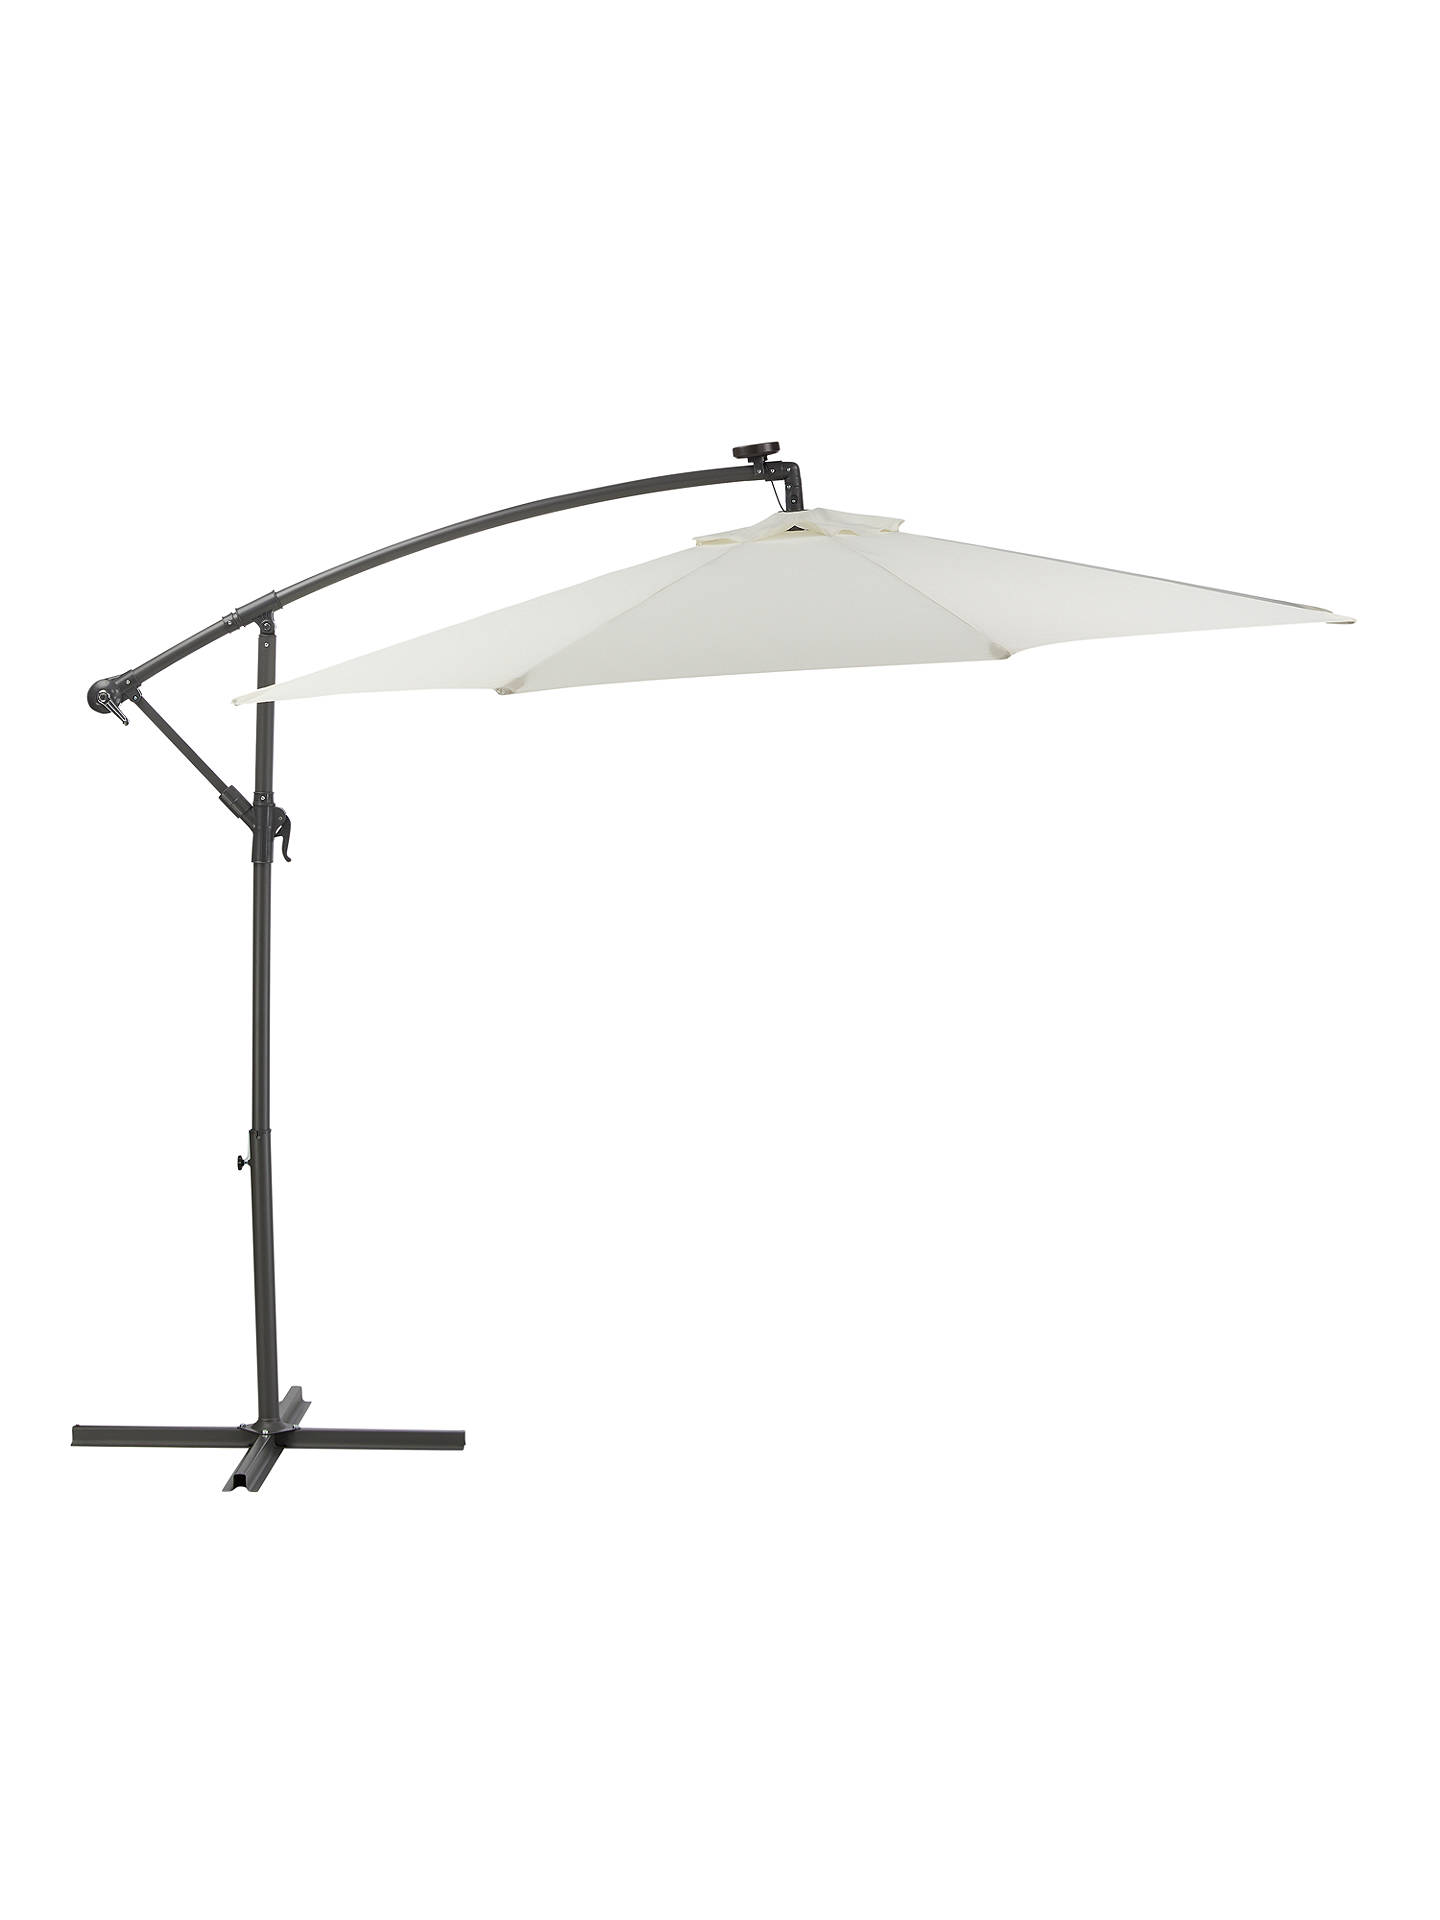 1755a1cc1a6f Buy John Lewis & Partners 3m Freestanding LED Lights Parasol, Oyster Online  at johnlewis.